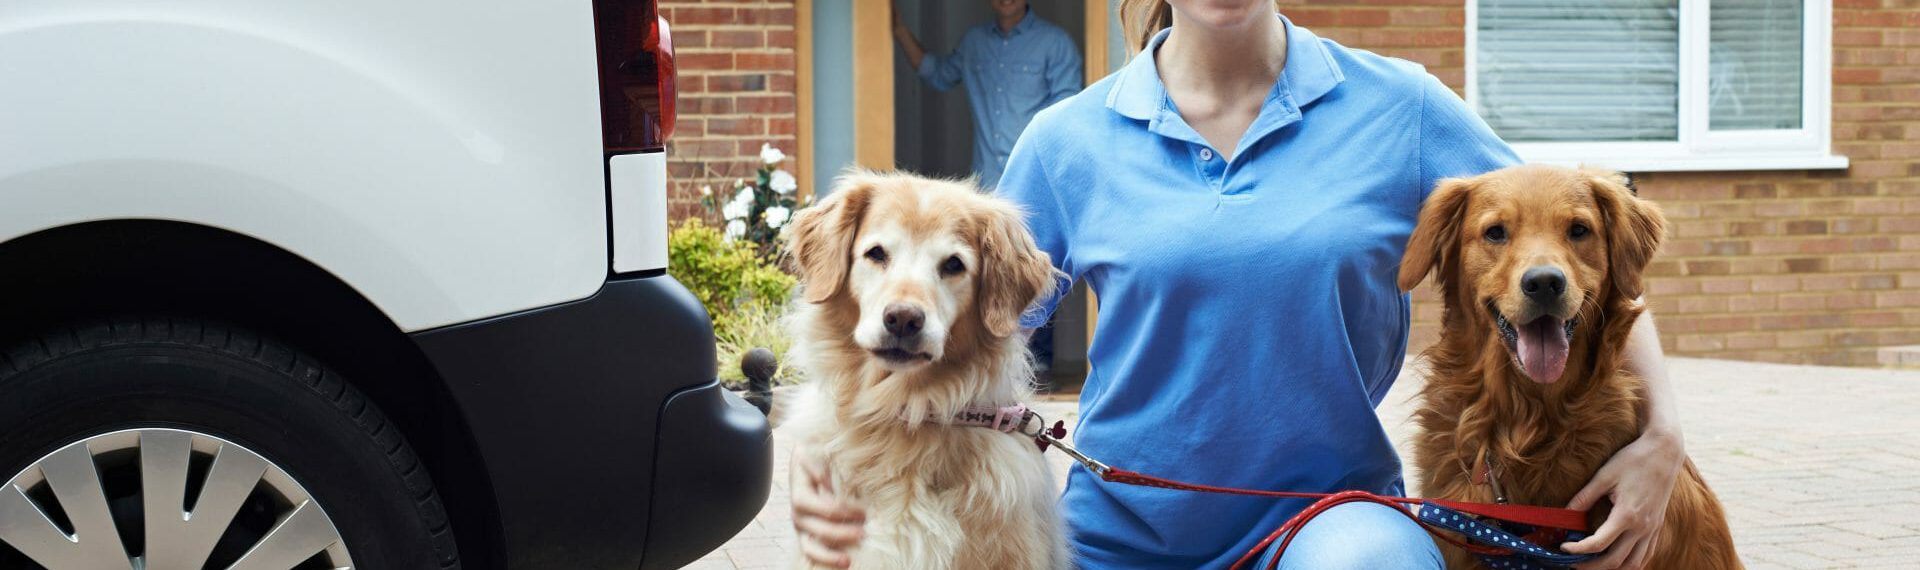 Why do you need Dog Walker's Insurance?